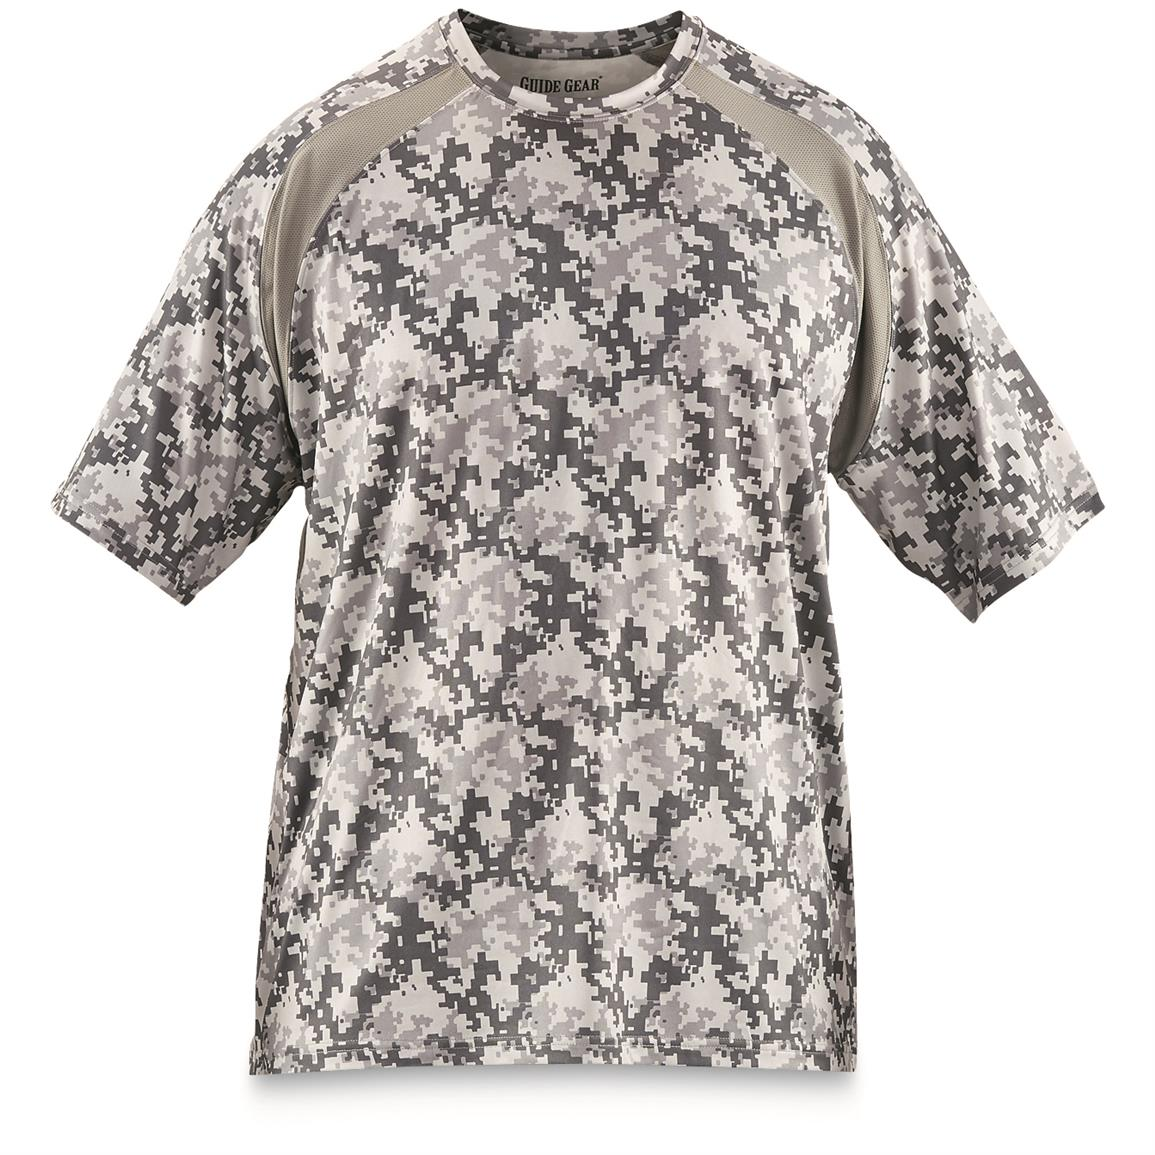 Guide Gear Men's Performance Fishing Short Sleeve T-Shirt, Gray Digital Camo